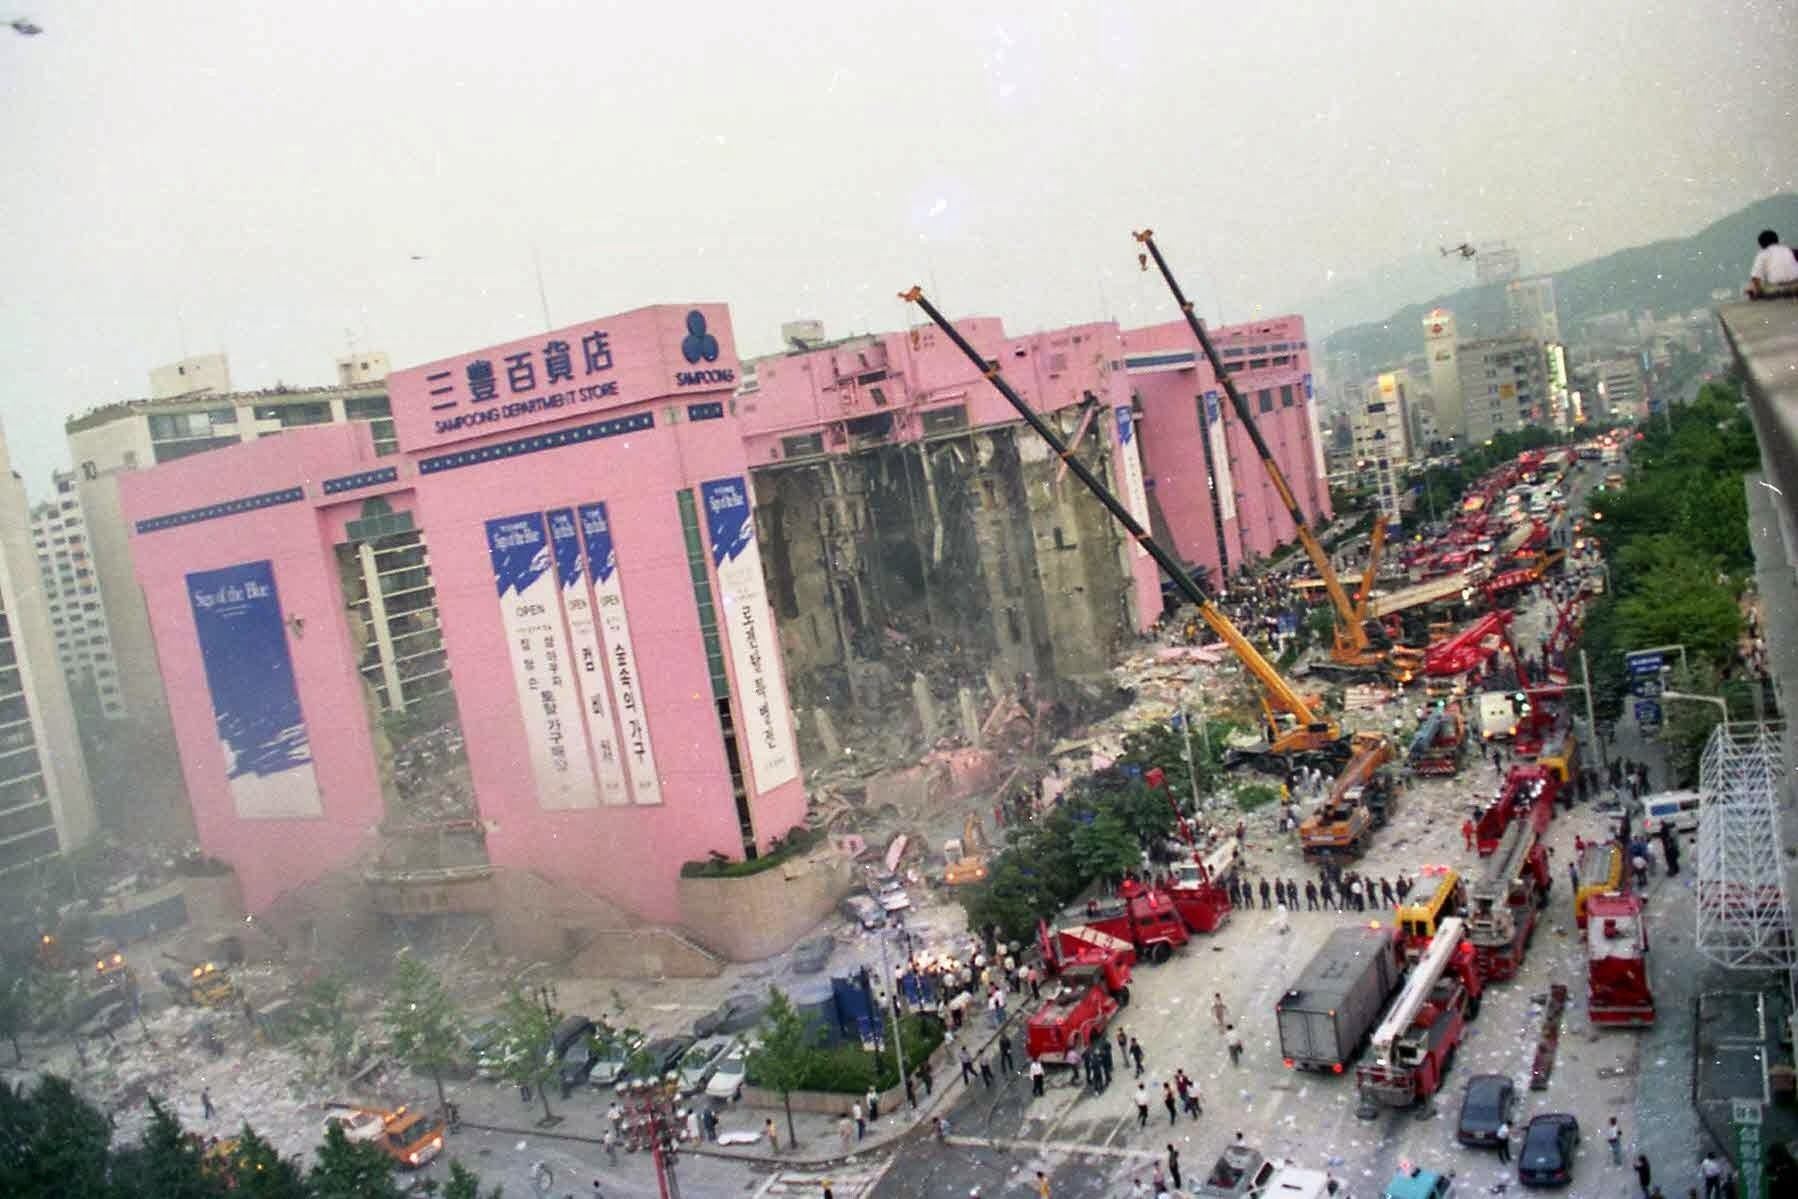 sampoong disaster research paper Collapse of the sampoong in response to a requests for peer review of a draft paper by a civil engineer cited the sampoong department store collapse as.